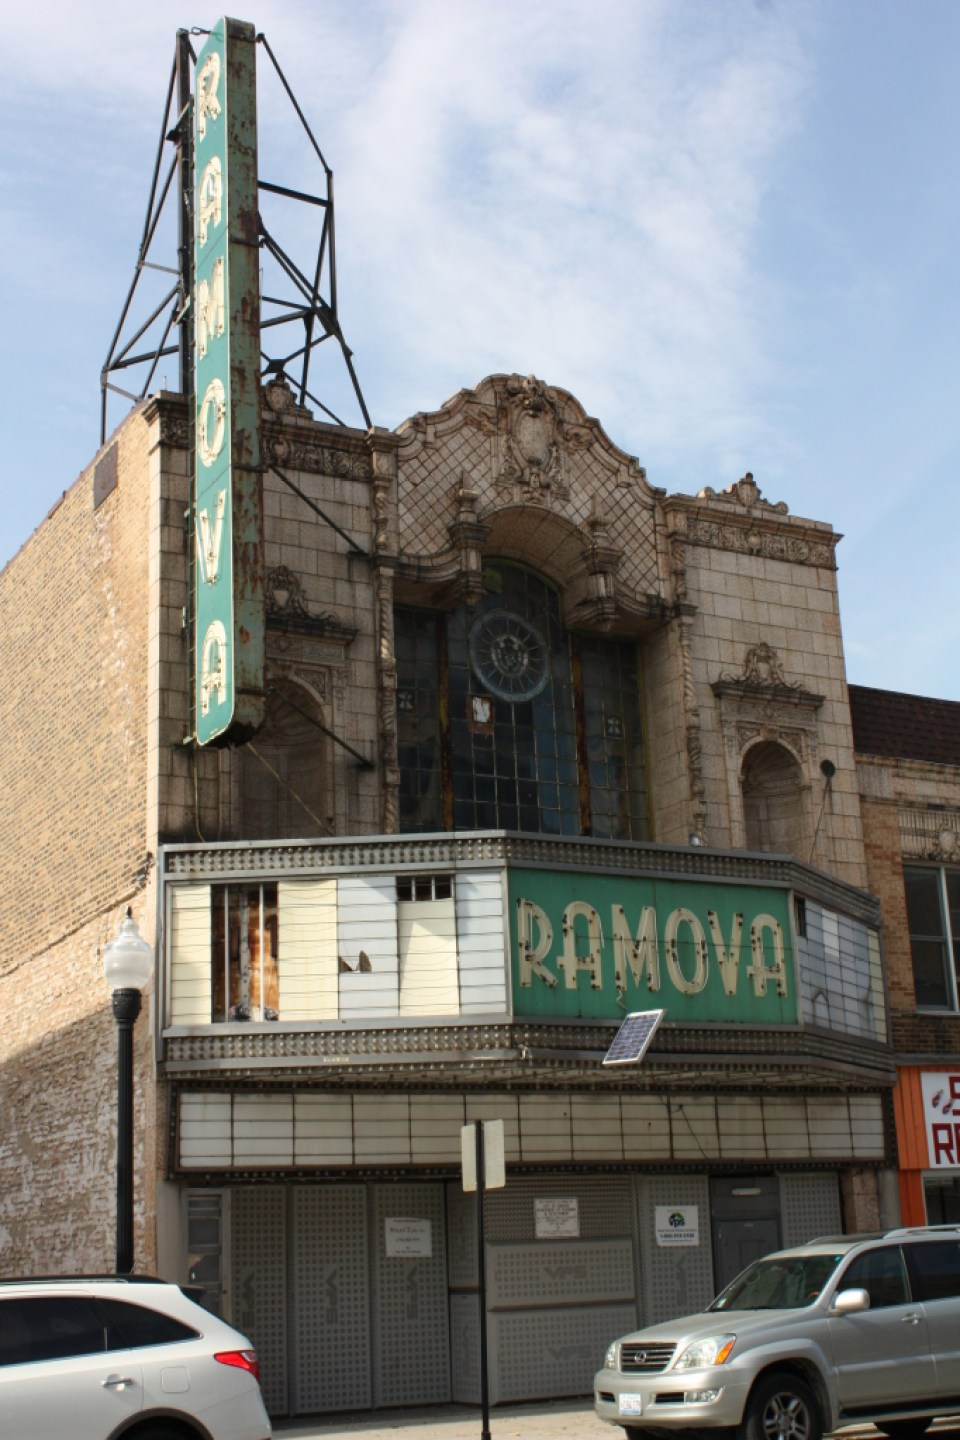 Ramova Theatre at 3508 S Halsted